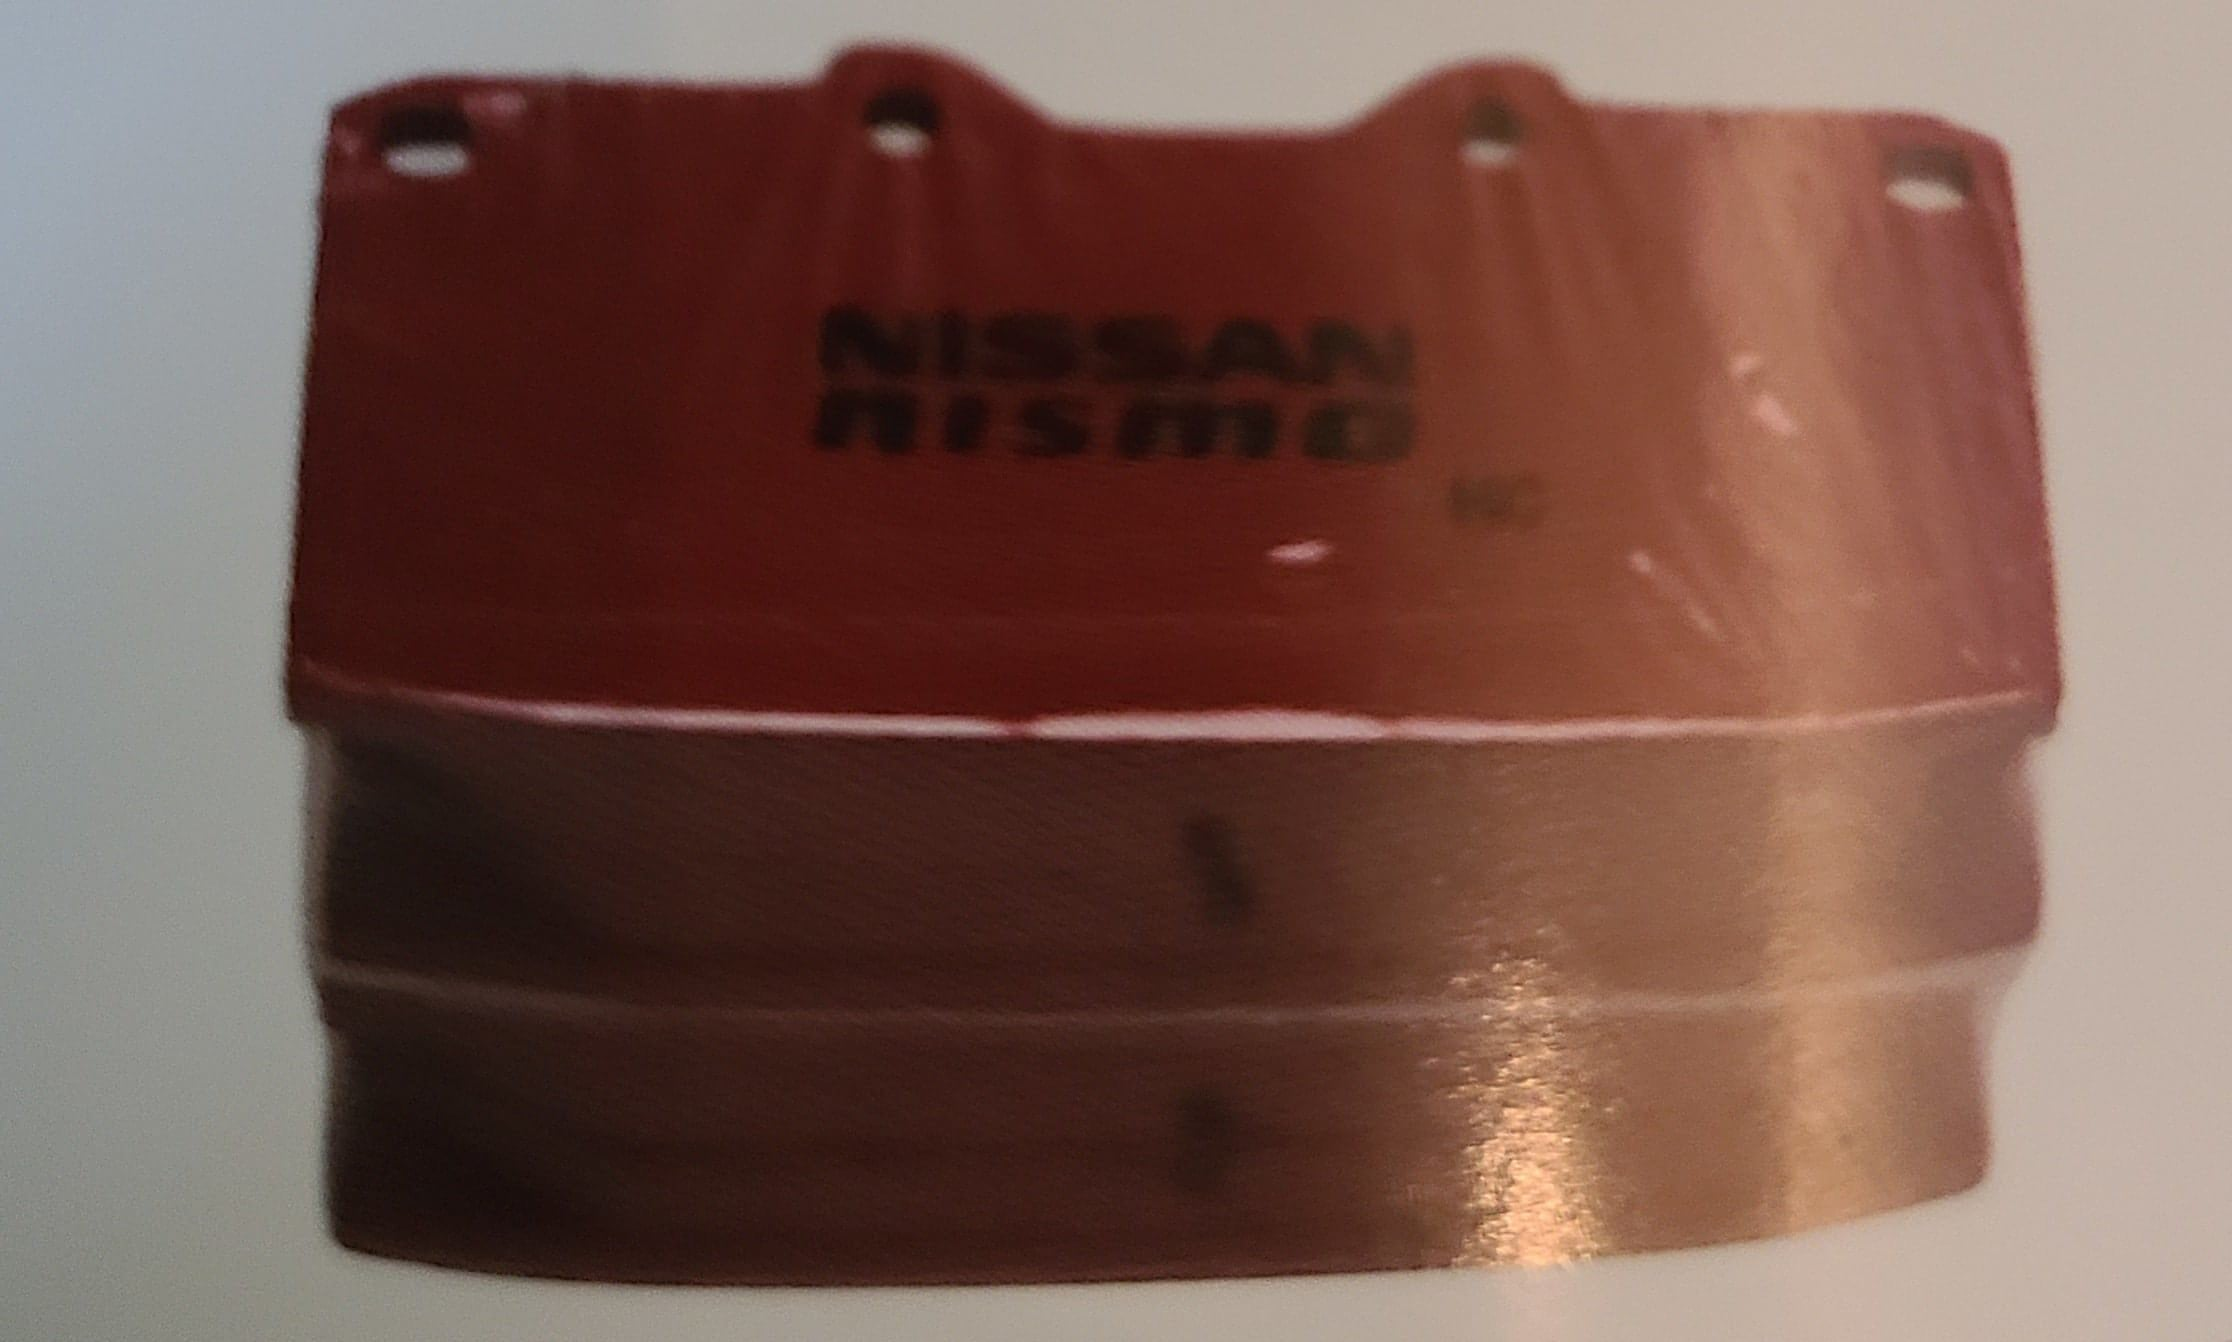 Nismo R32 GTR/Z32/S14/S15 Front Track Pad Set